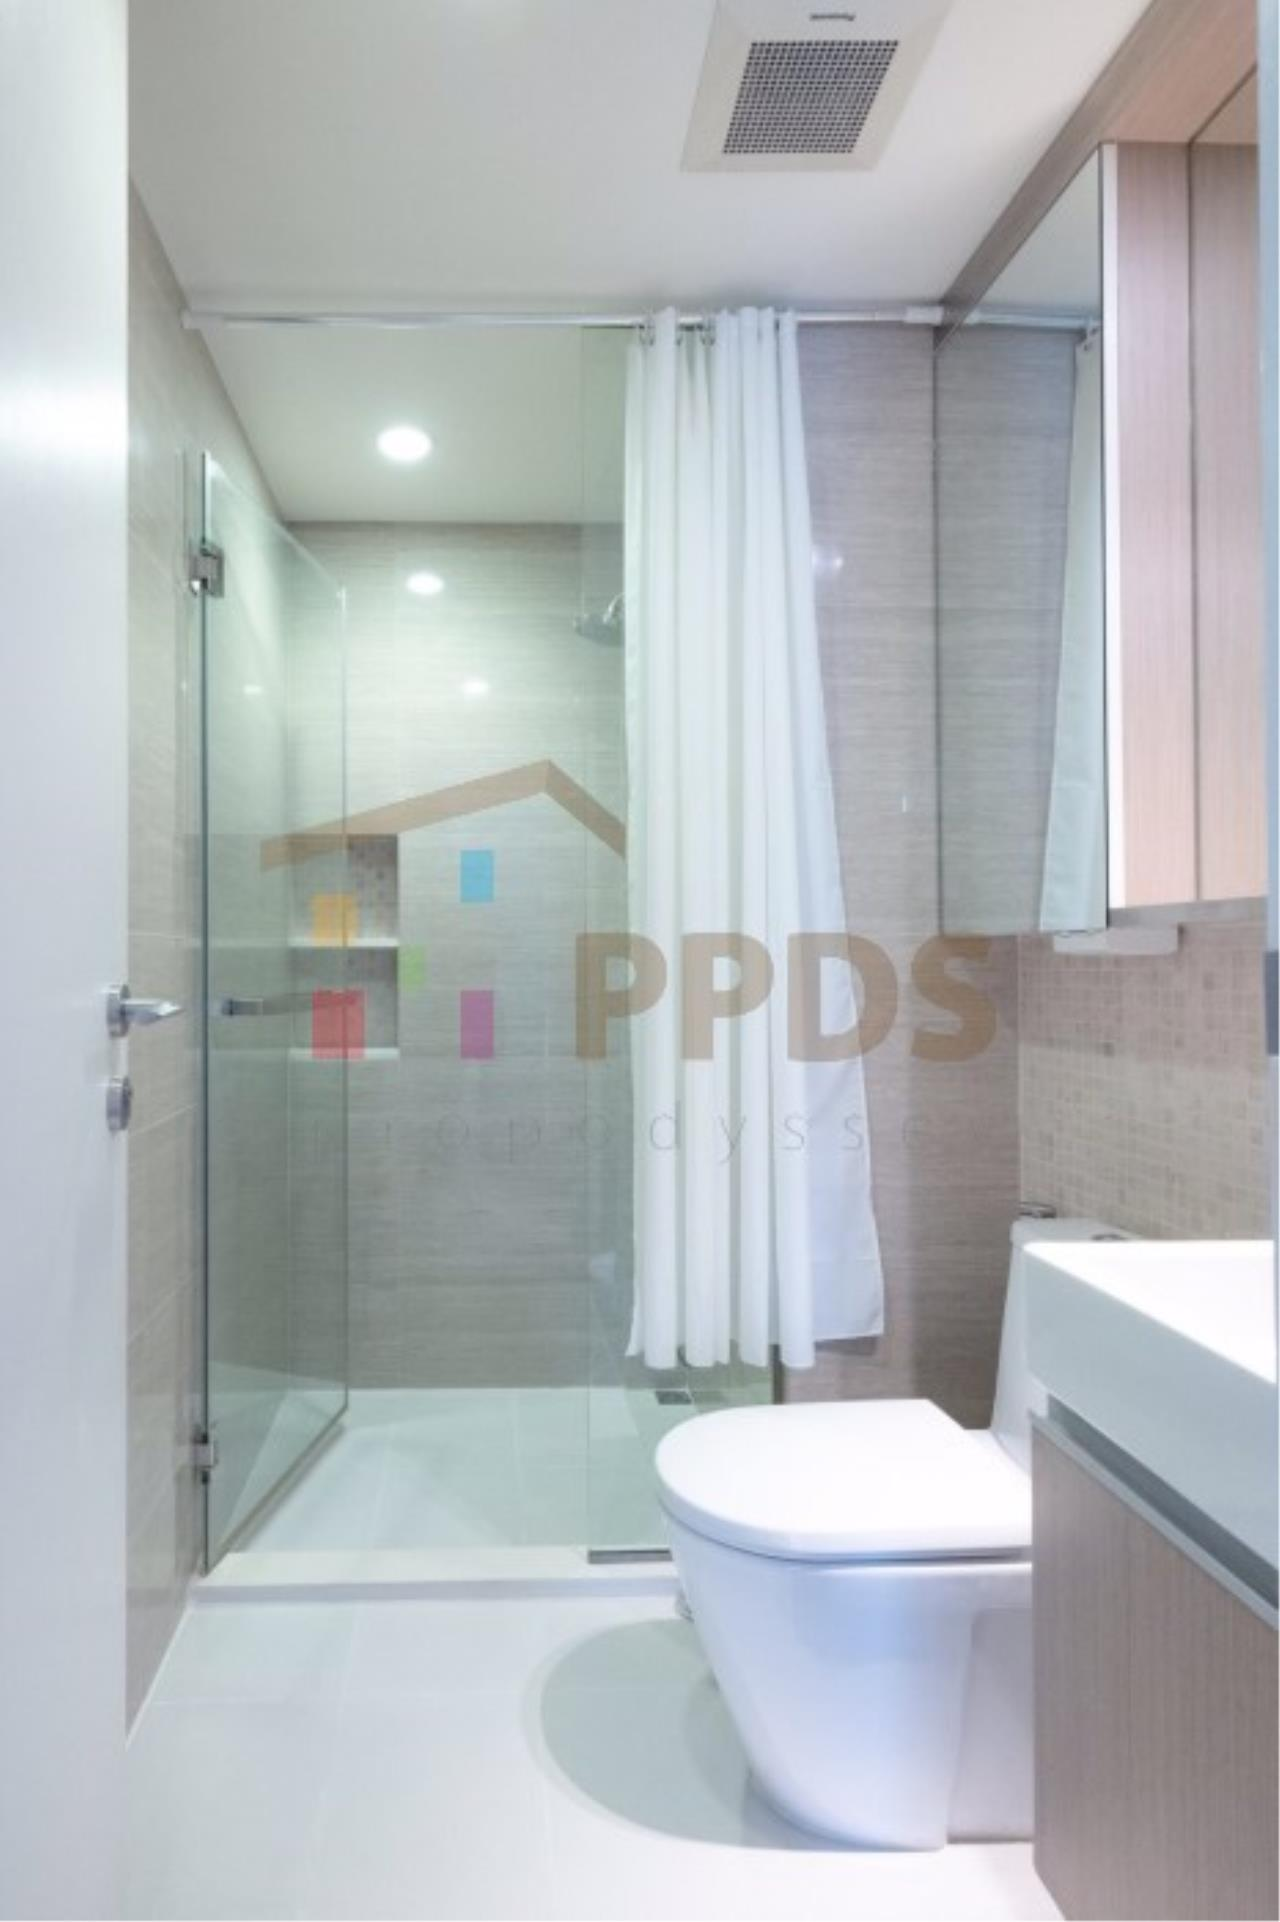 Propodyssey Agency's The Mode Sukhumvit 61 Condo for rent 2 bedrooms top floor 3